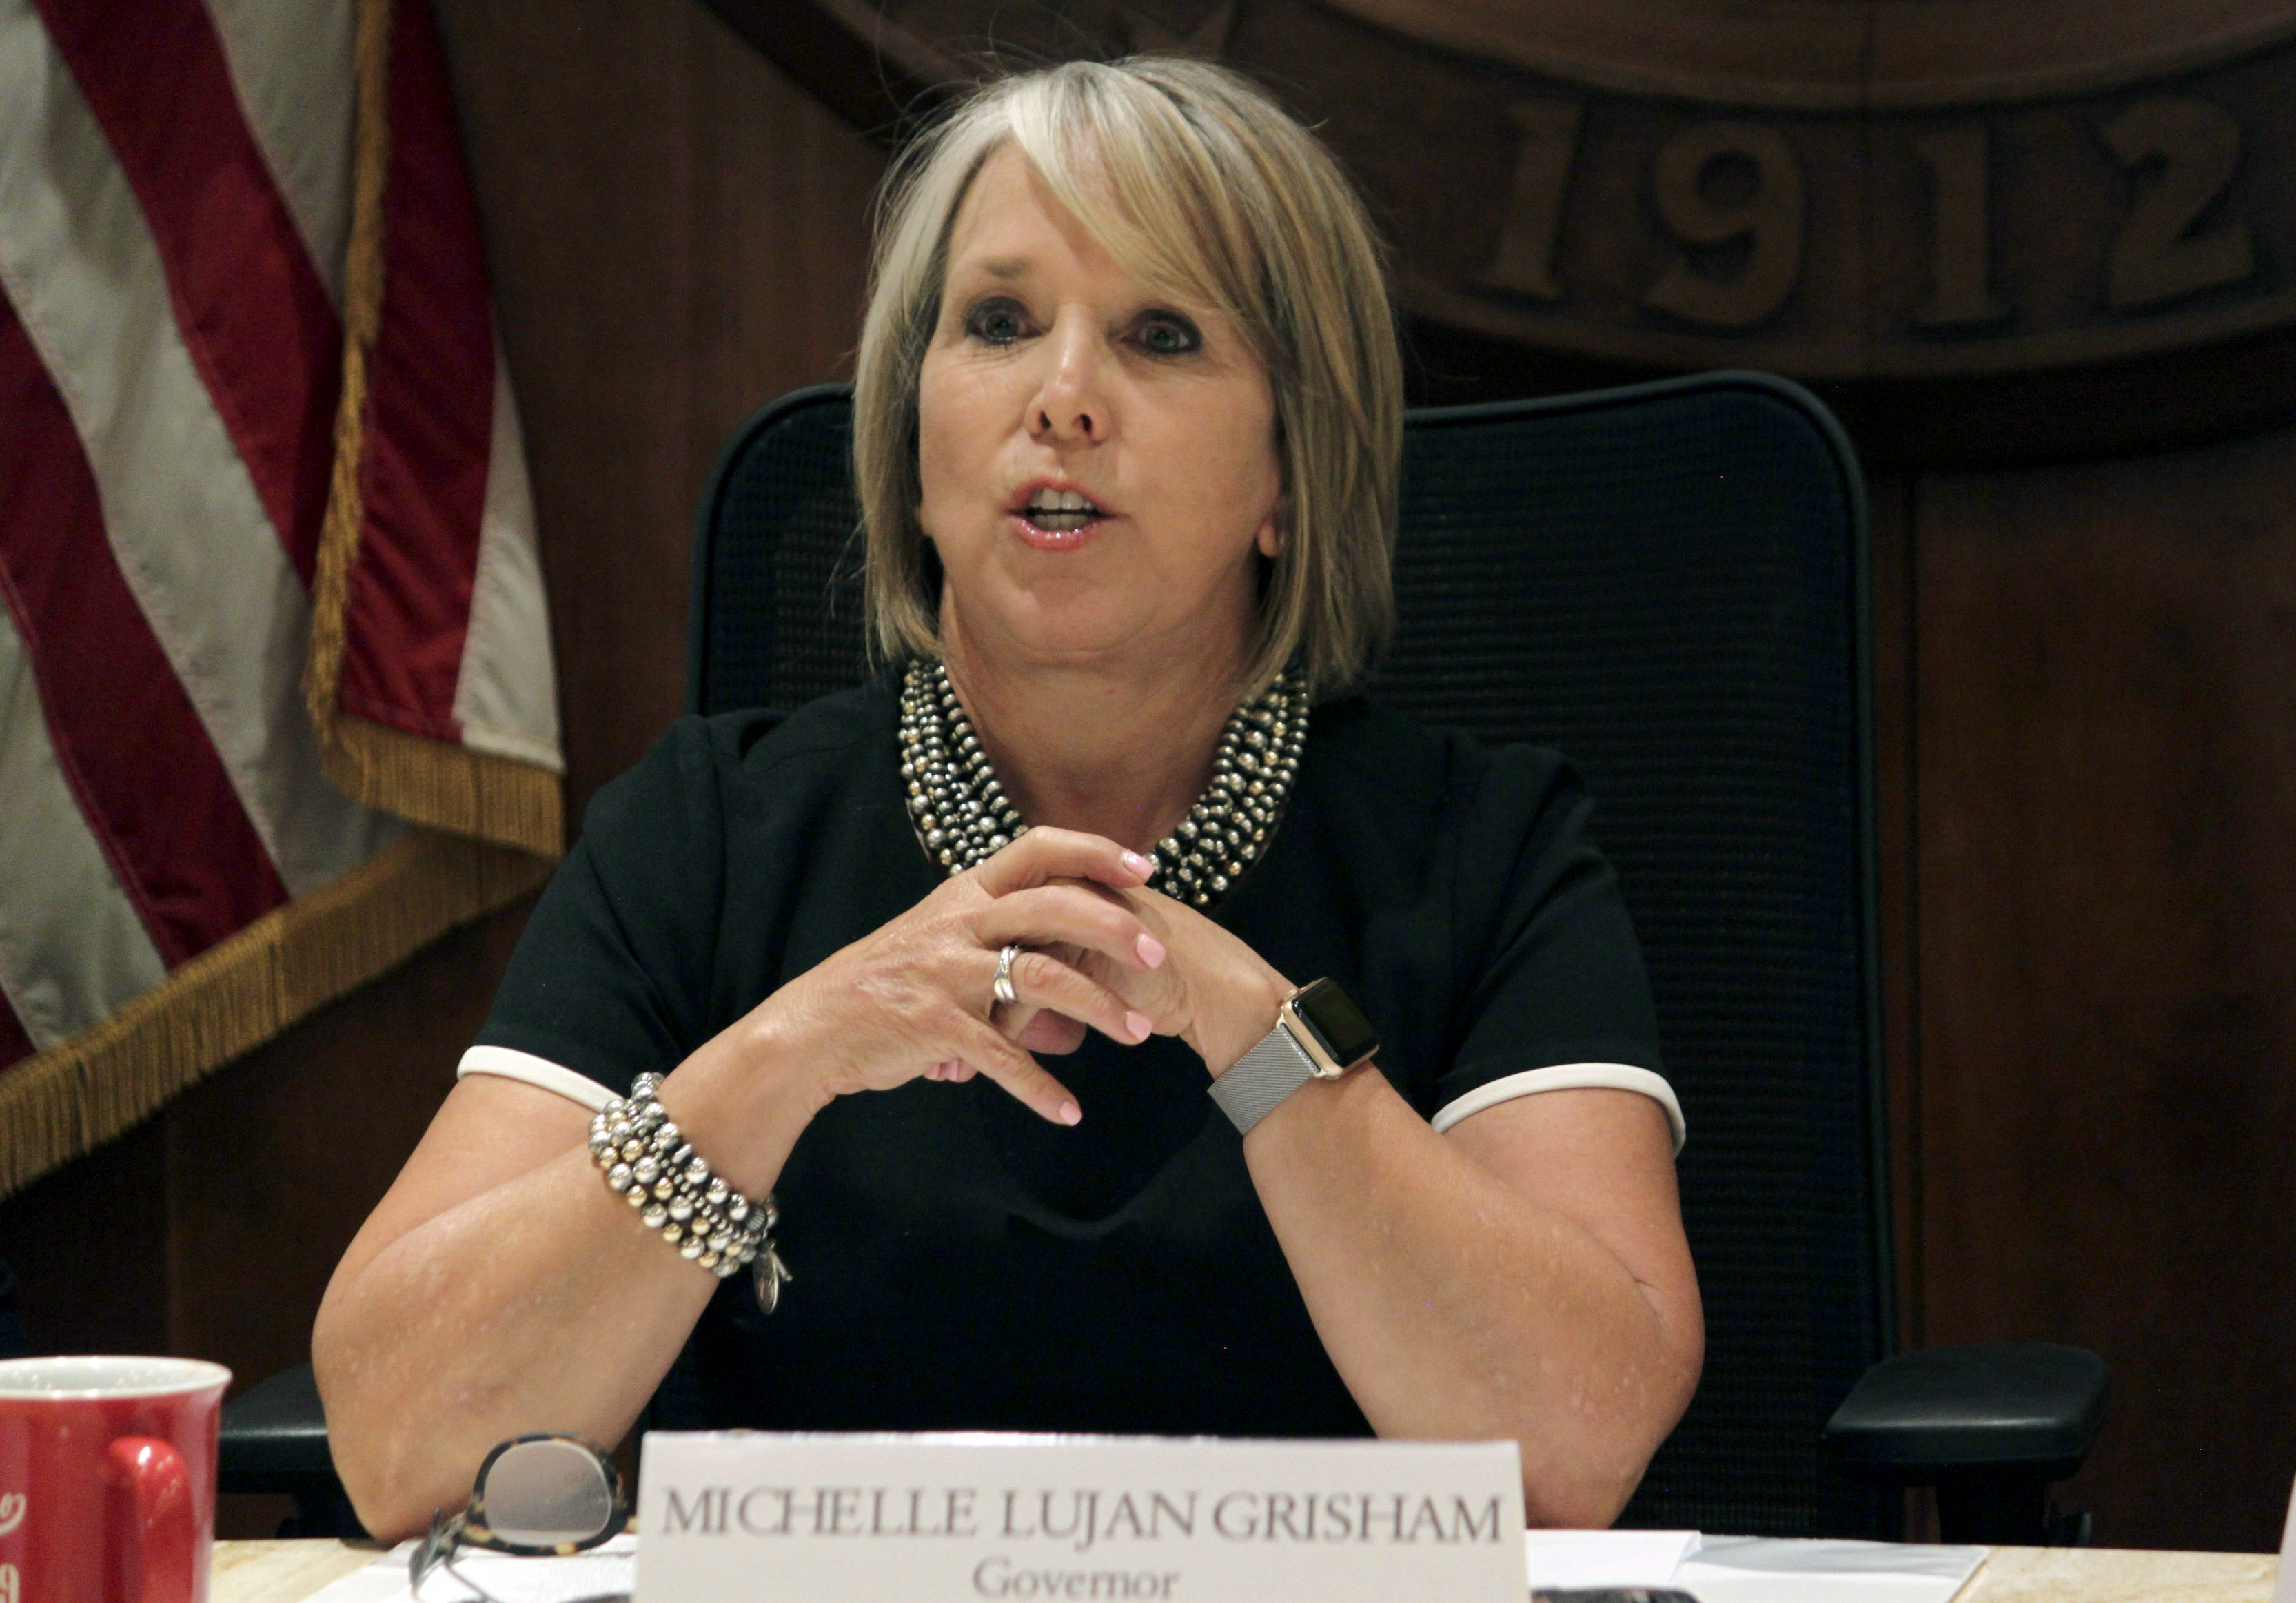 In this July 9, 2019 file photo, New Mexico Gov. Michelle Lujan Grisham speaks during a news conference in Santa Fe, N.M.